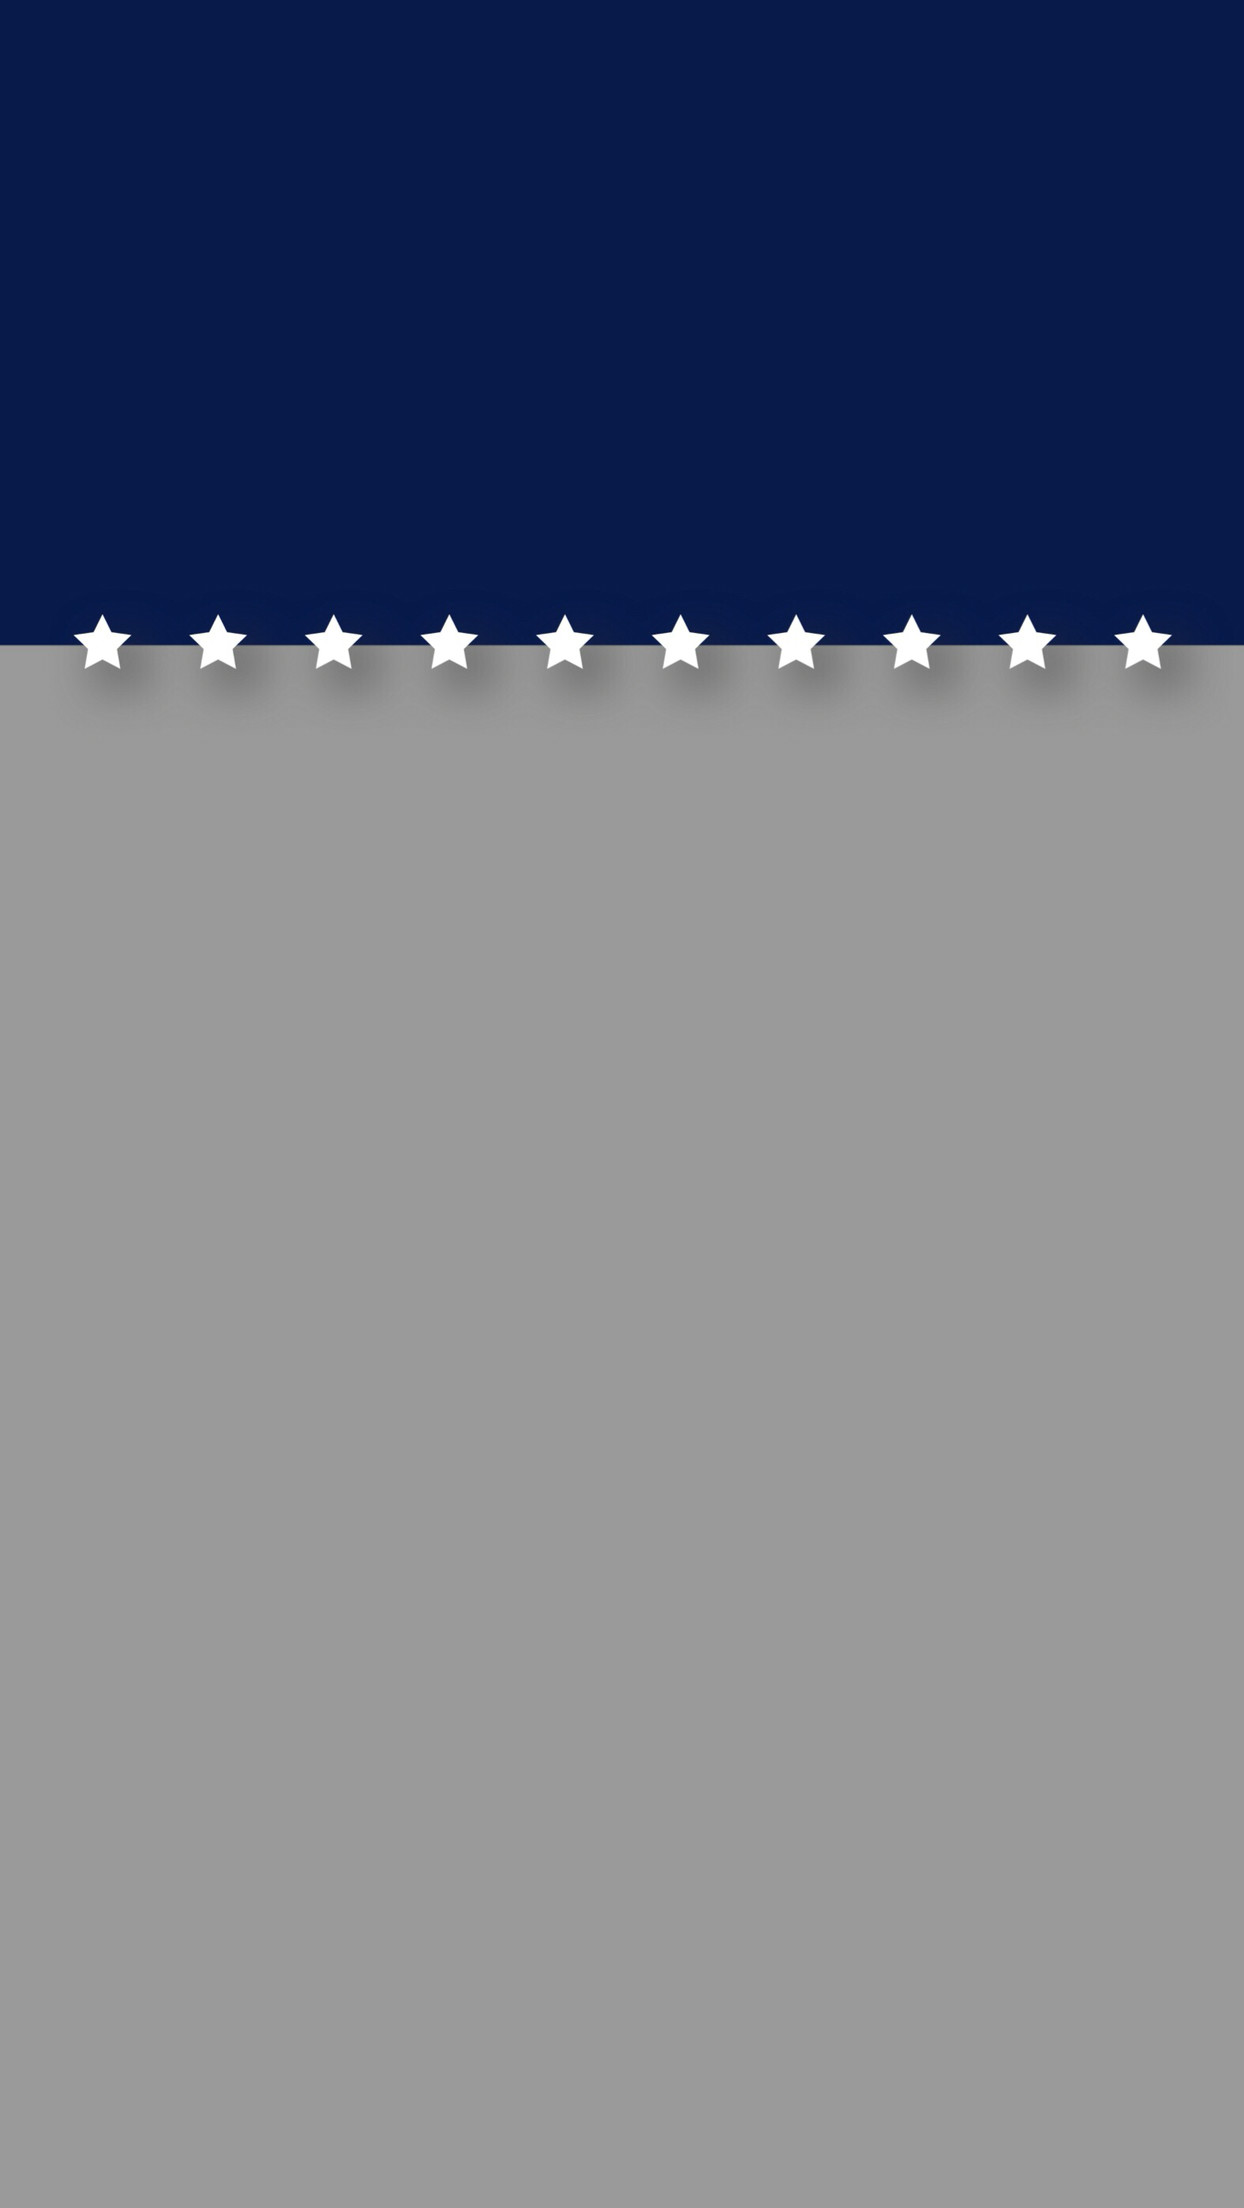 Minimal blue and gray with stars patriotic iPhone 6 Plus lock screen  wallpaper.